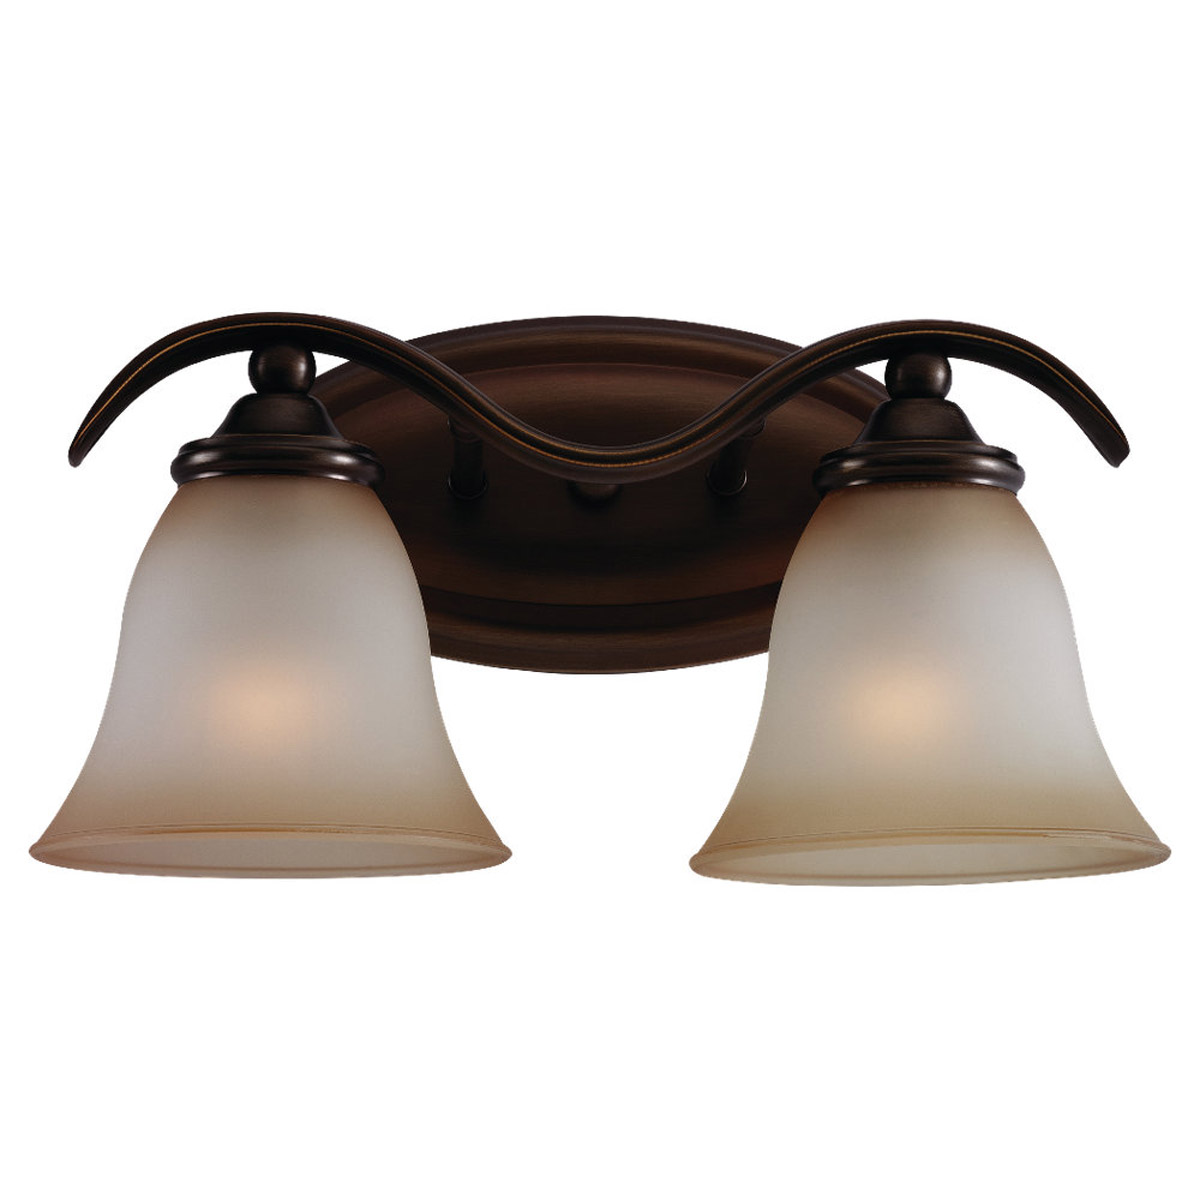 Sea Gull Lighting Rialto 2 Light Bath Vanity in Russet Bronze 44360-829